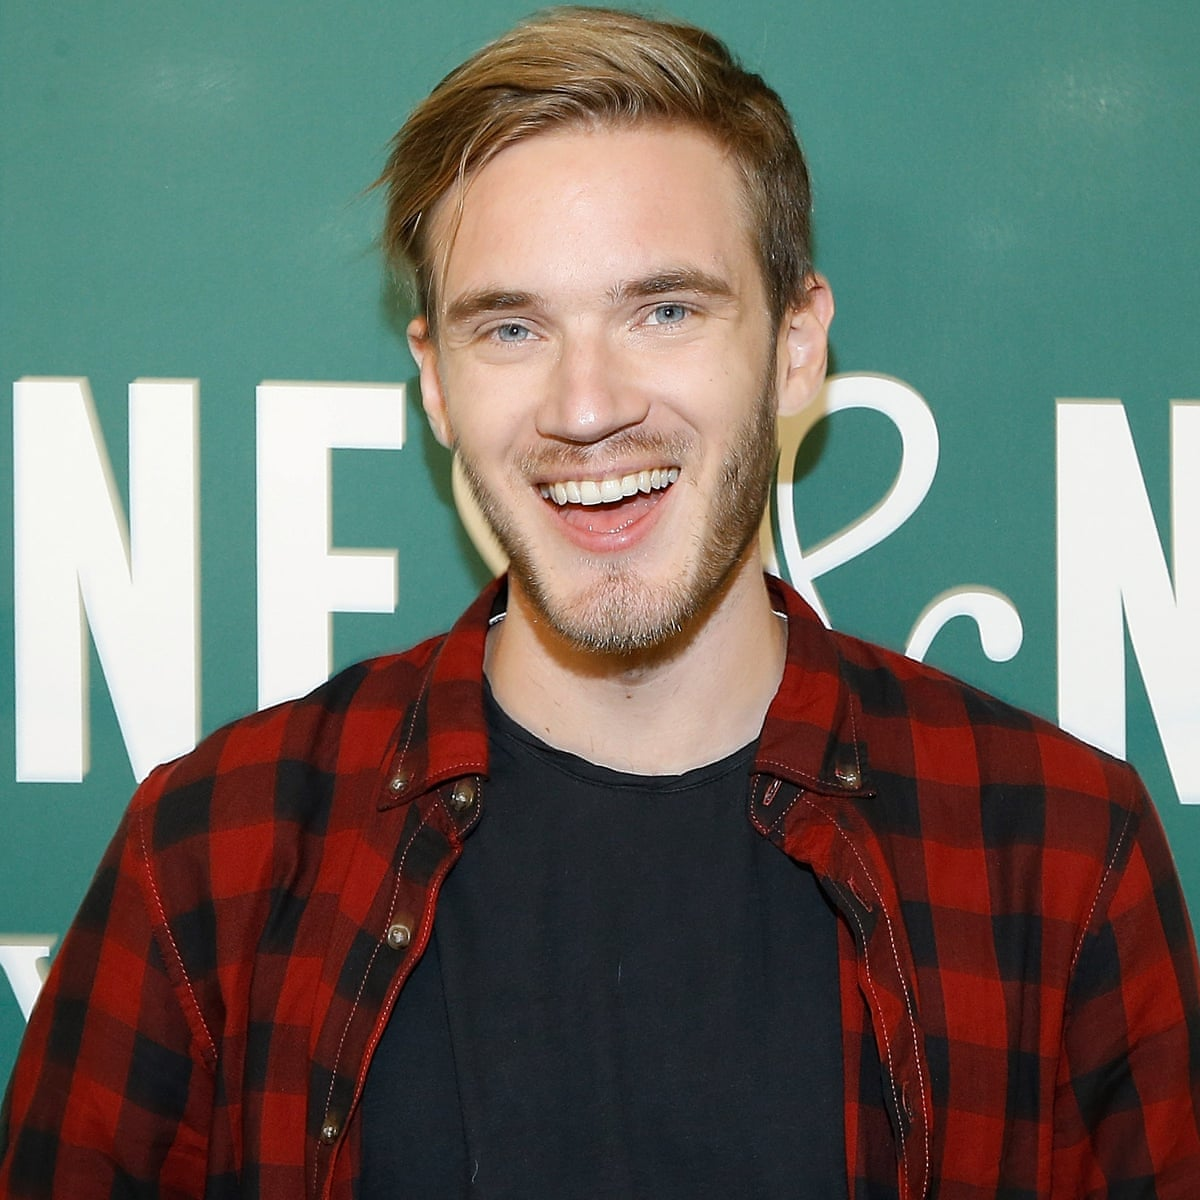 YouTuber PewDiePie to take break from platform as 'very tired' | YouTube |  The Guardian